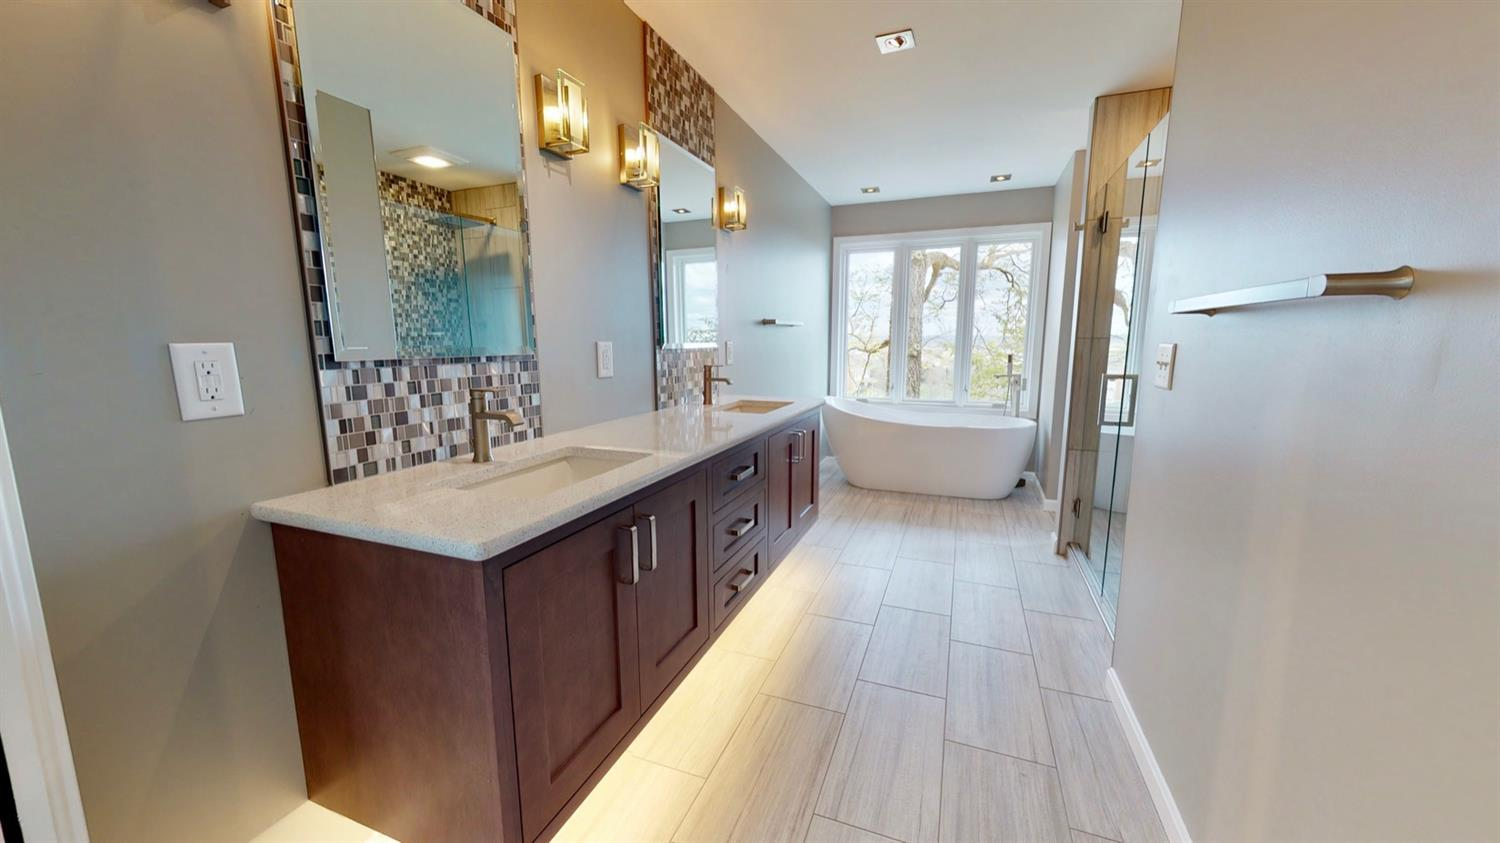 Master bathroom with heated floors and sweeping views